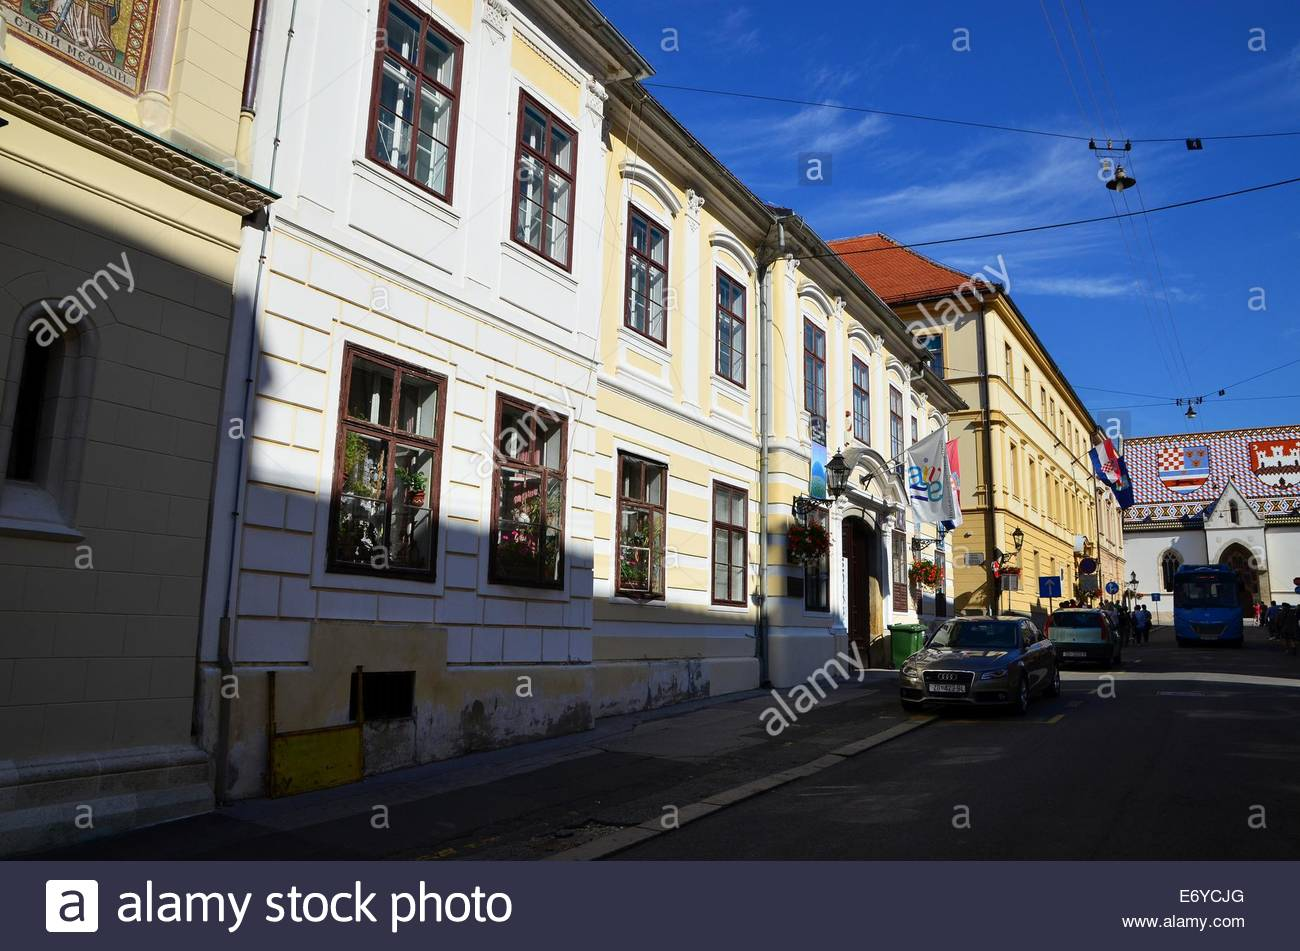 Croatian Museum of Naive Art, upper town, Zagreb, Croatia Stock Photo